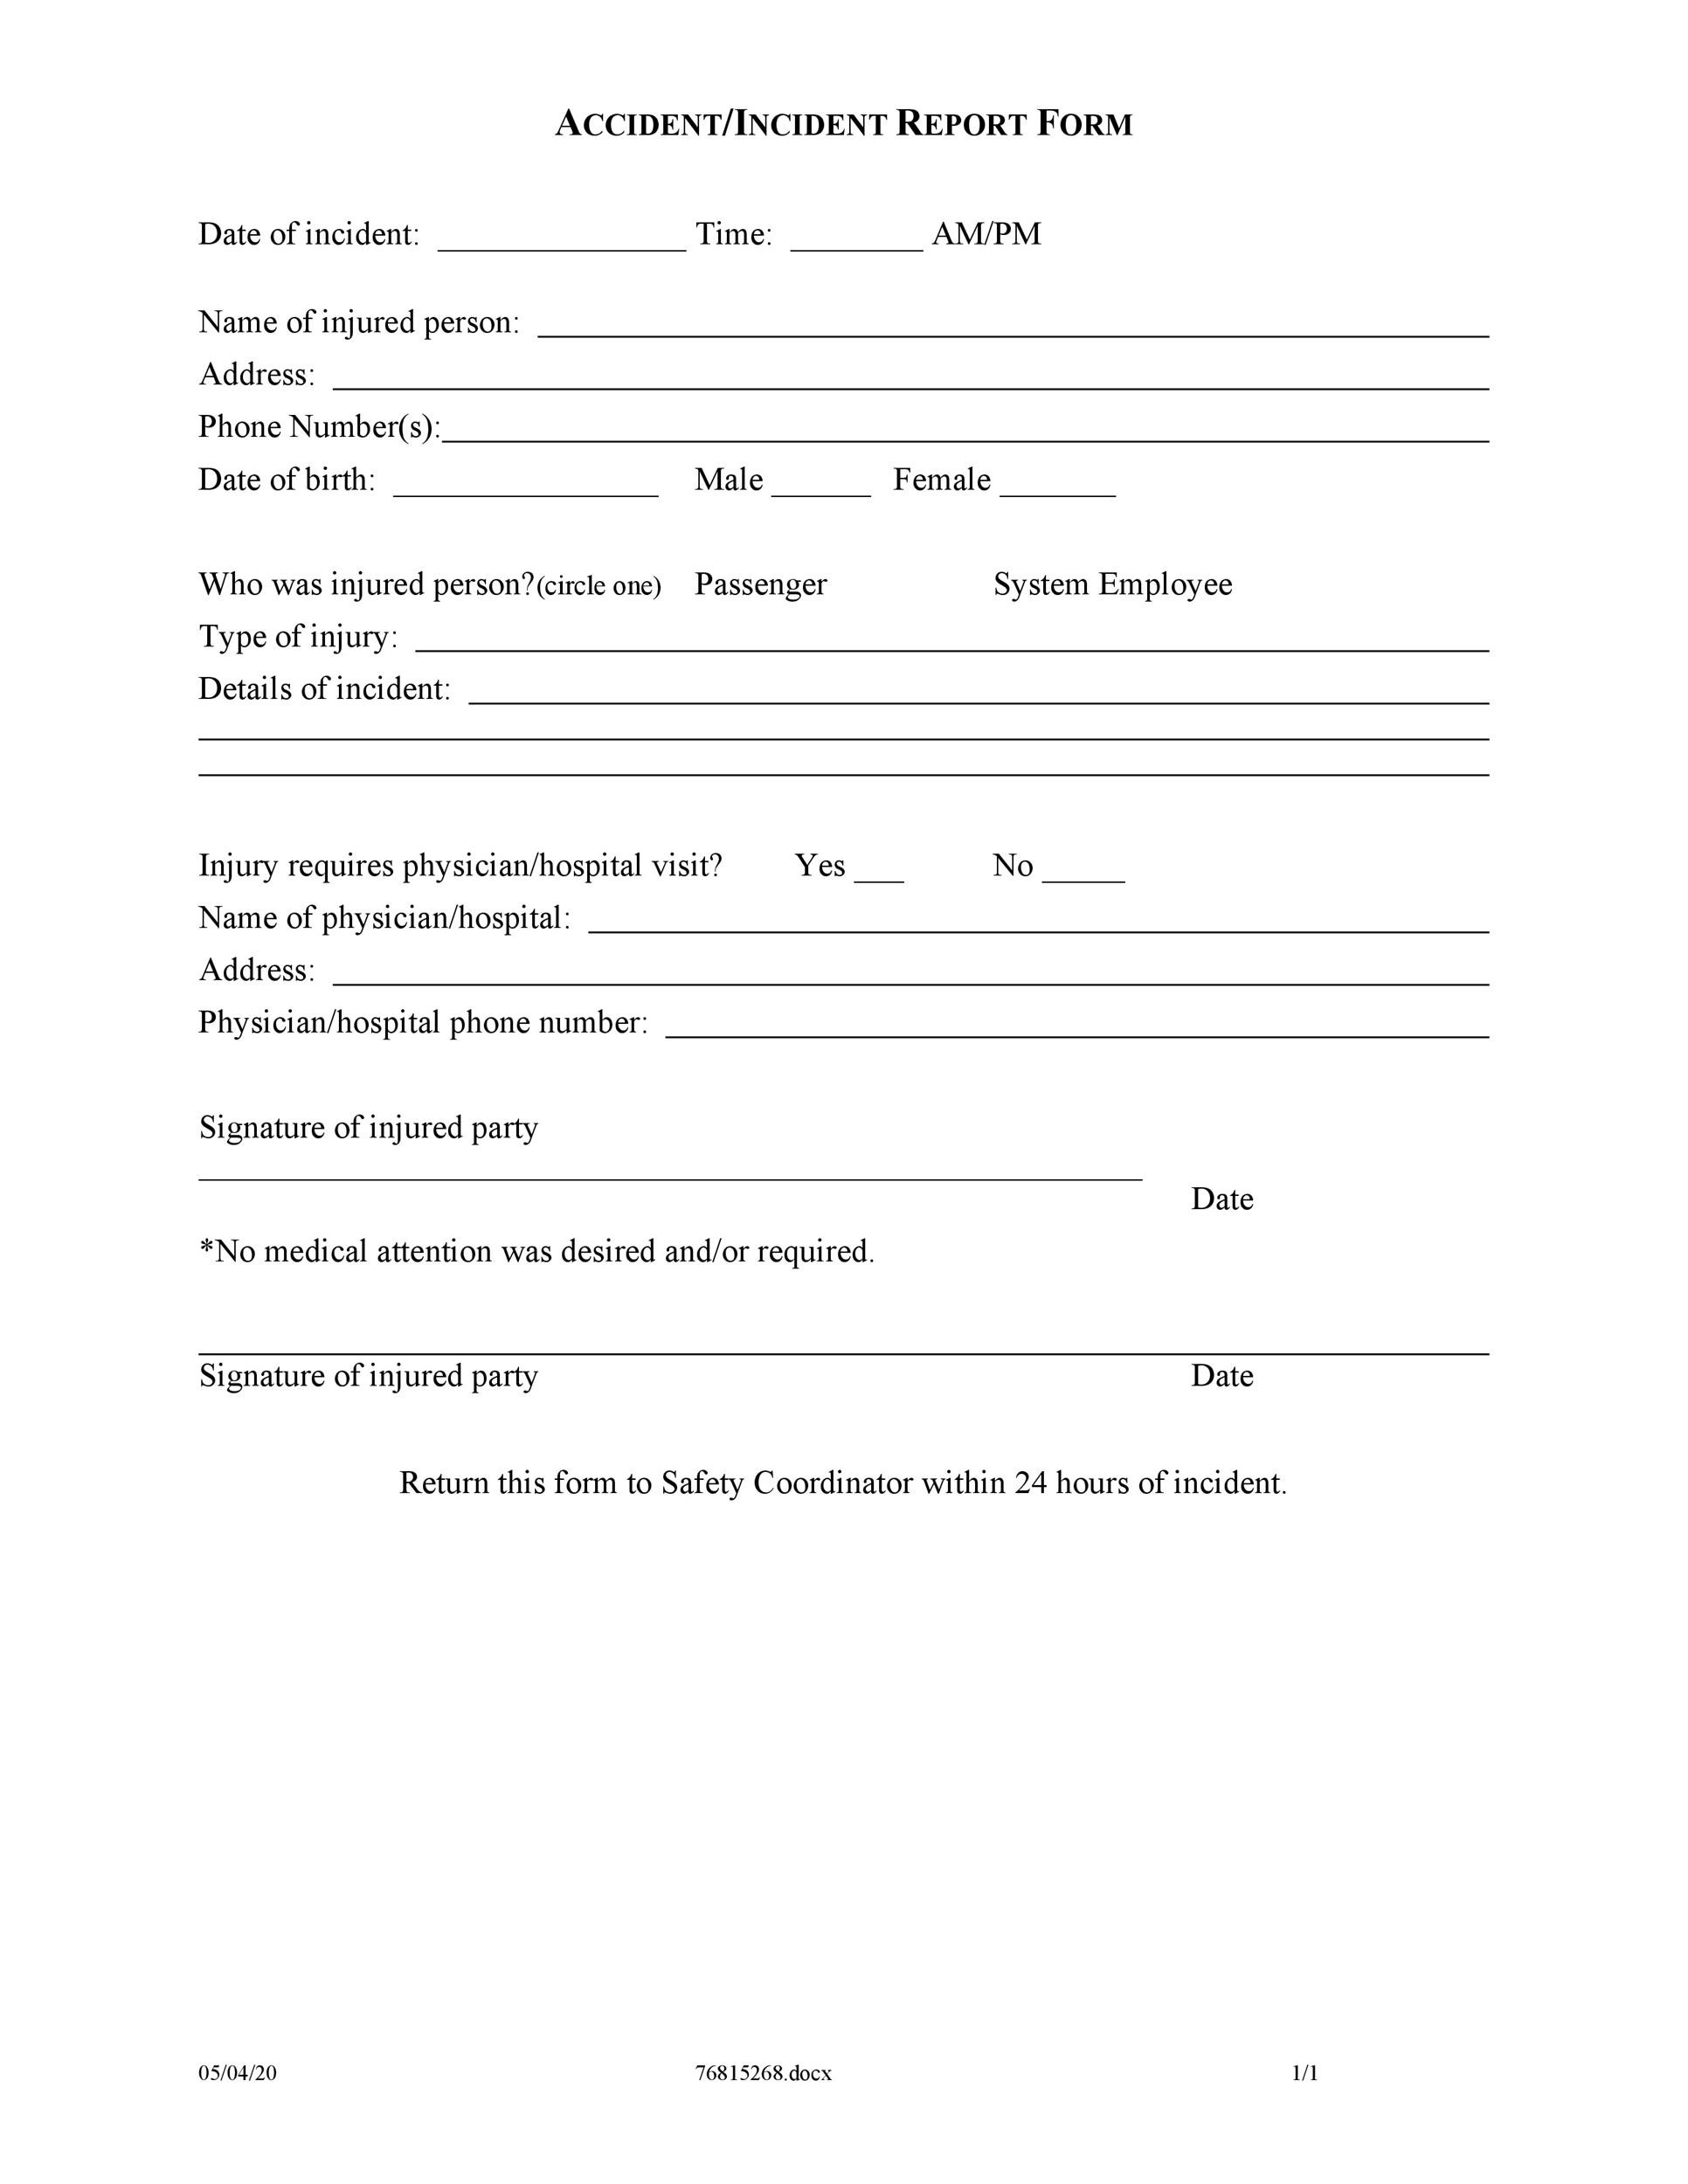 Incident Report Forms Injury Incident Report Form Template Best